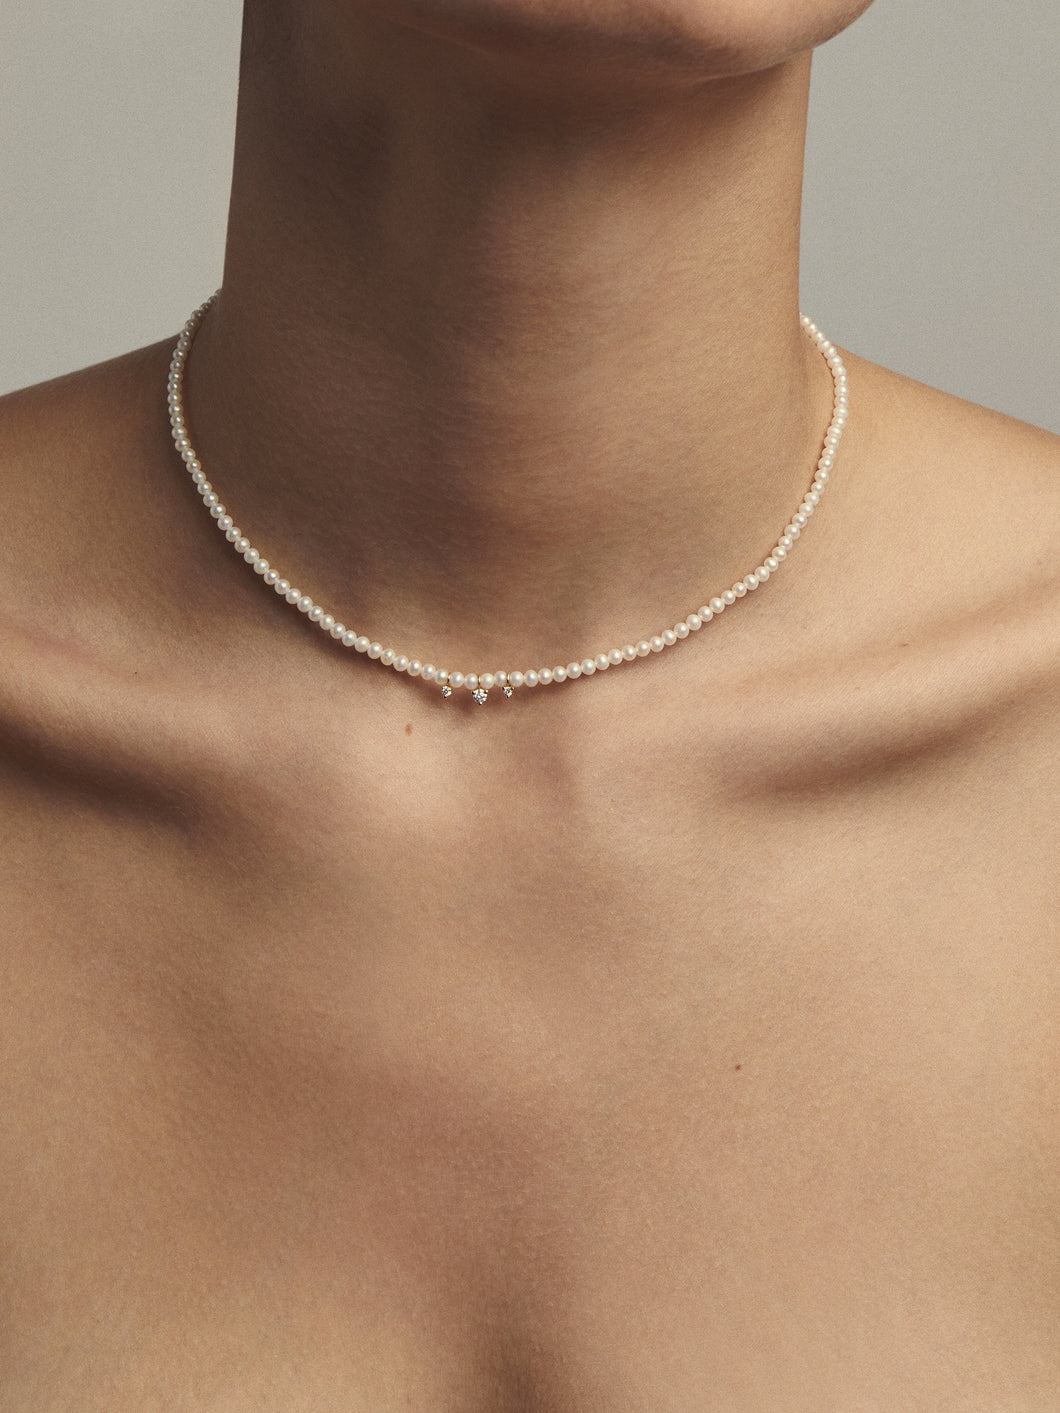 Sea of Beauty Collection.  Pearl Choker and Three Diamond Necklace SBN206